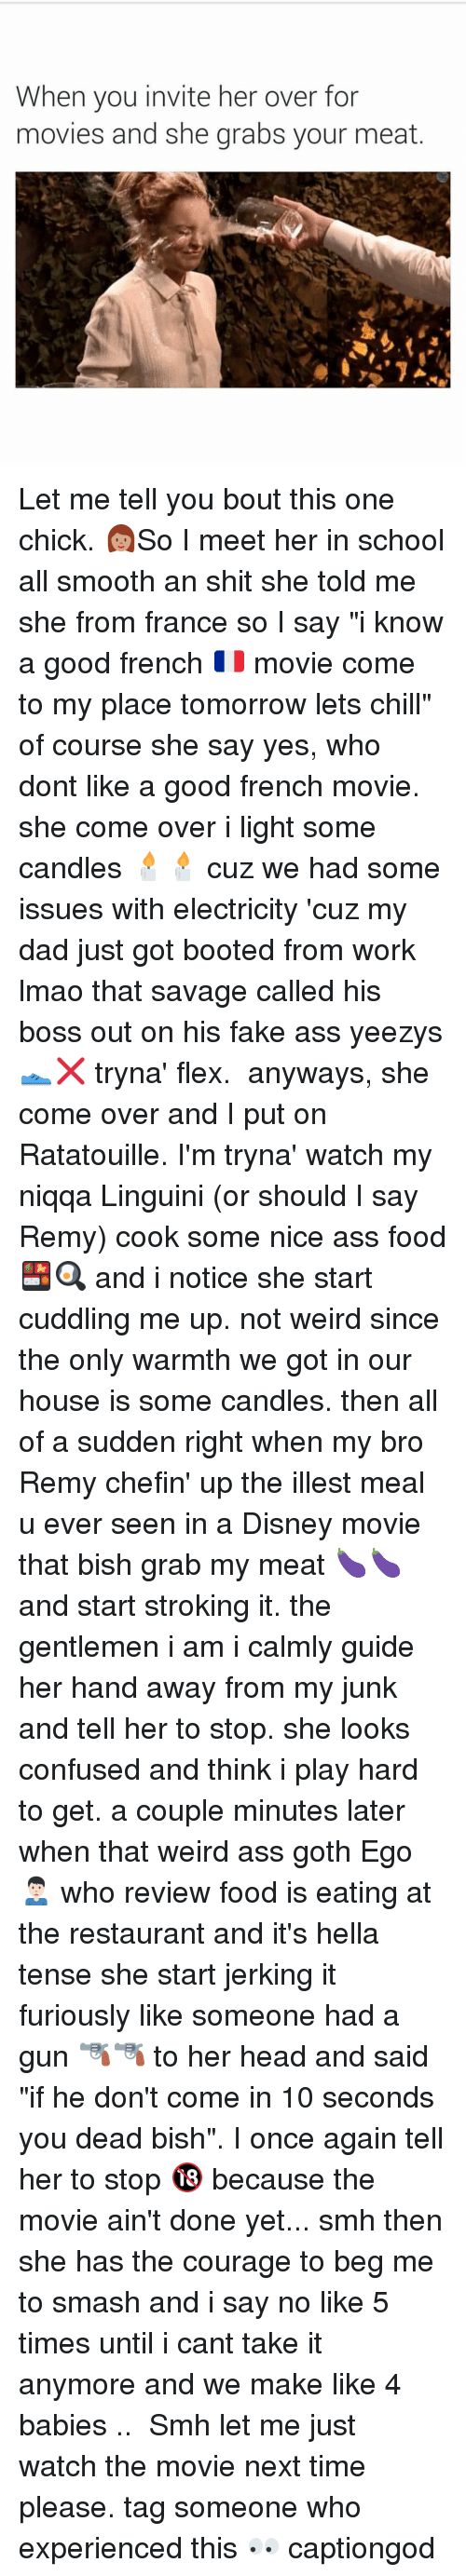 """Cant Take It: When you invite her over for  movies and she grabs your meat Let me tell you bout this one chick. 👩🏽So I meet her in school all smooth an shit she told me she from france so I say """"i know a good french 🇫🇷 movie come to my place tomorrow lets chill"""" of course she say yes, who dont like a good french movie. she come over i light some candles 🕯🕯 cuz we had some issues with electricity 'cuz my dad just got booted from work lmao that savage called his boss out on his fake ass yeezys 👟❌ tryna' flex. ⠀ anyways, she come over and I put on Ratatouille. I'm tryna' watch my niqqa Linguini (or should I say Remy) cook some nice ass food 🍱🍳 and i notice she start cuddling me up. not weird since the only warmth we got in our house is some candles. then all of a sudden right when my bro Remy chefin' up the illest meal u ever seen in a Disney movie that bish grab my meat 🍆🍆 and start stroking it. the gentlemen i am i calmly guide her hand away from my junk and tell her to stop. she looks confused and think i play hard to get. a couple minutes later when that weird ass goth Ego 🙍🏻♂️ who review food is eating at the restaurant and it's hella tense she start jerking it furiously like someone had a gun 🔫🔫 to her head and said """"if he don't come in 10 seconds you dead bish"""". I once again tell her to stop 🔞 because the movie ain't done yet... smh then she has the courage to beg me to smash and i say no like 5 times until i cant take it anymore and we make like 4 babies .. ⠀ Smh let me just watch the movie next time please. tag someone who experienced this 👀 captiongod"""